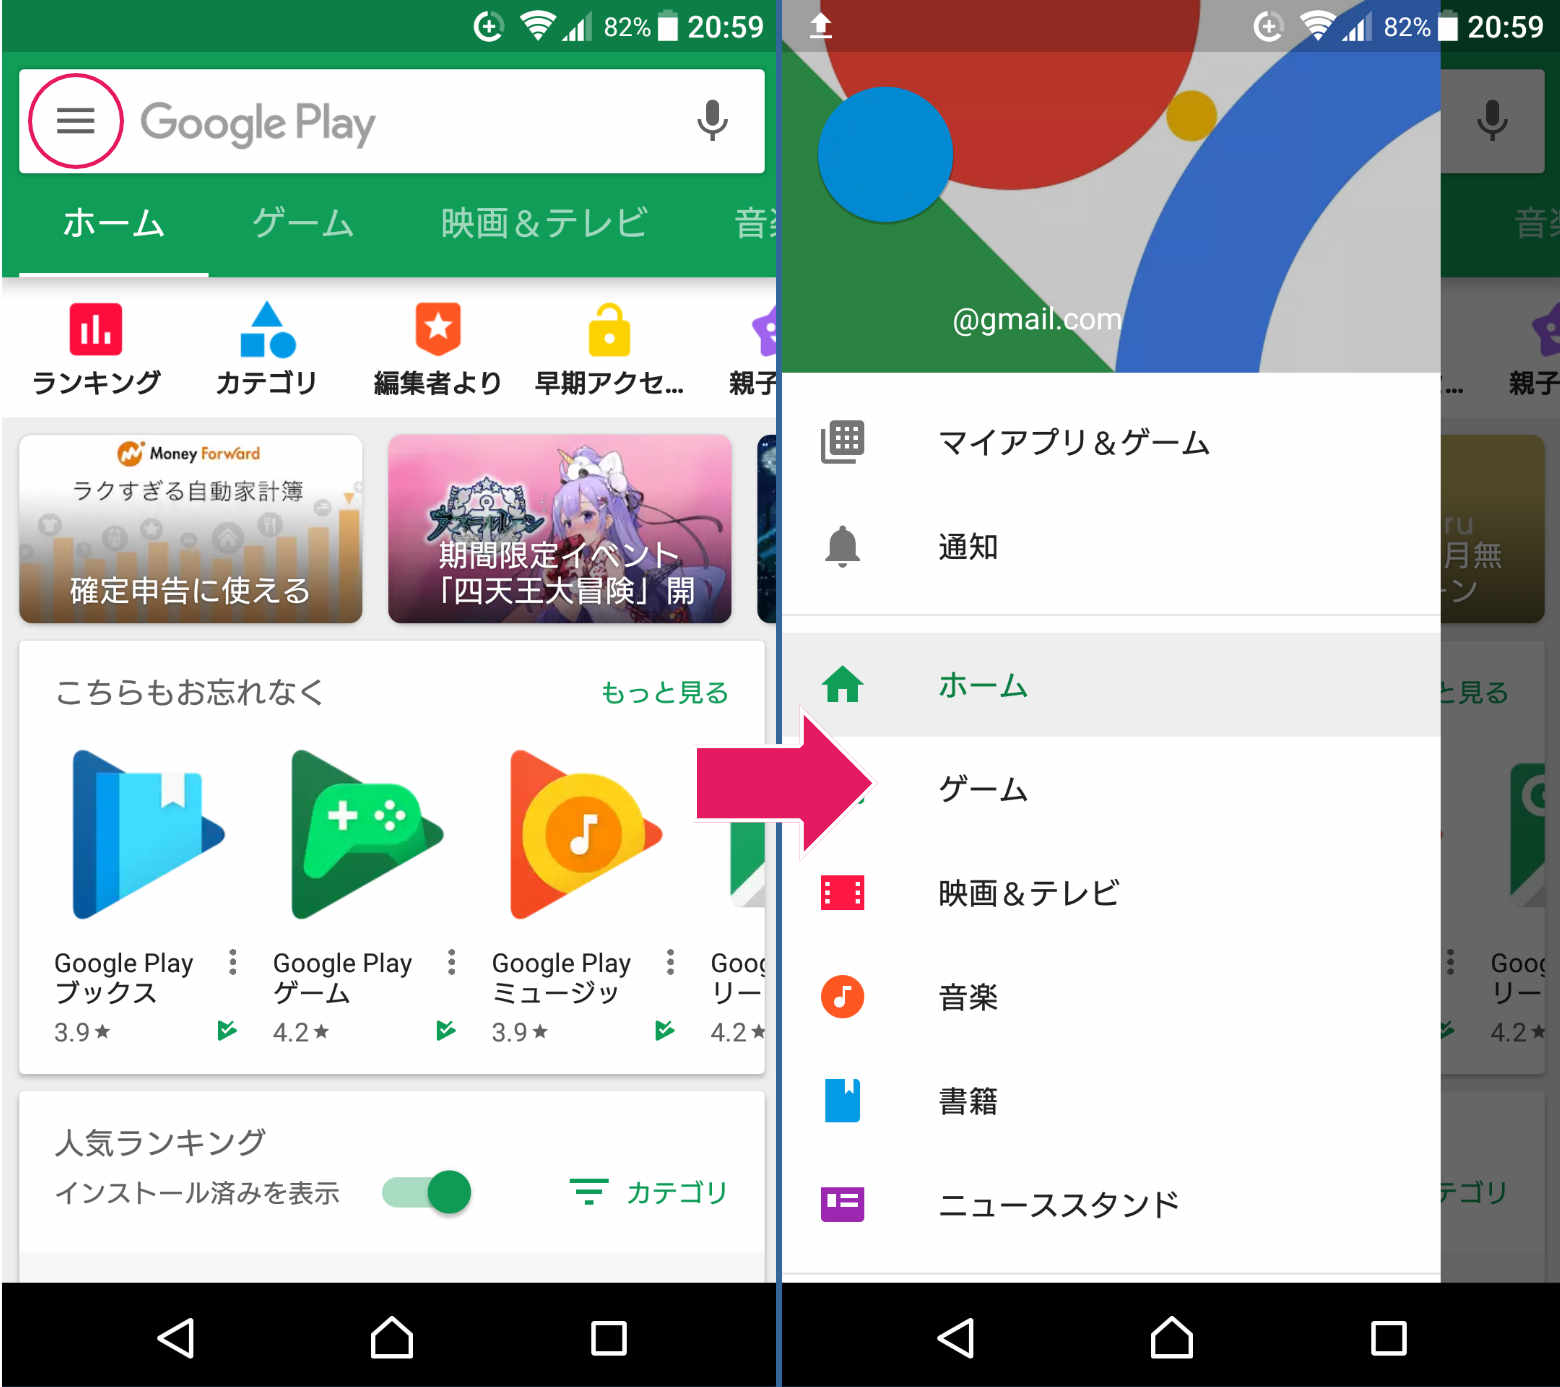 GooglePlayストア